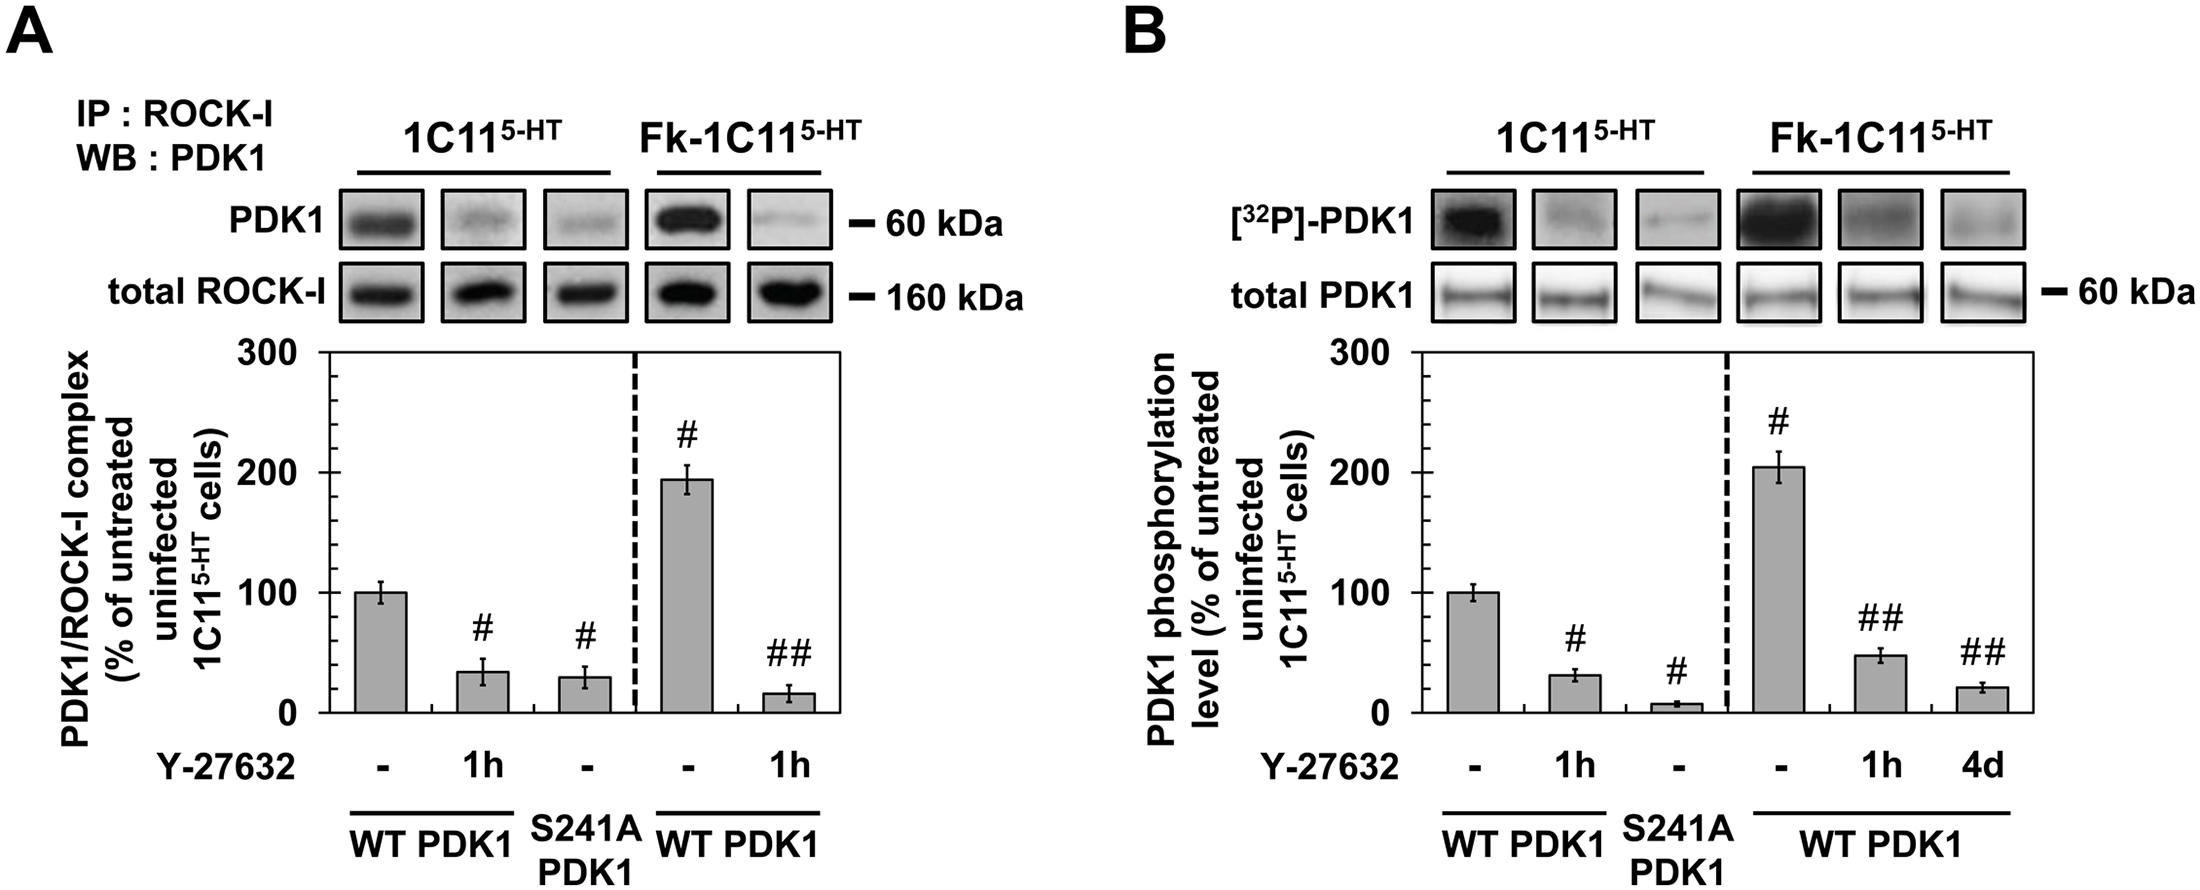 ROCK-I interacts with PDK1 and phosphorylates PDK1.